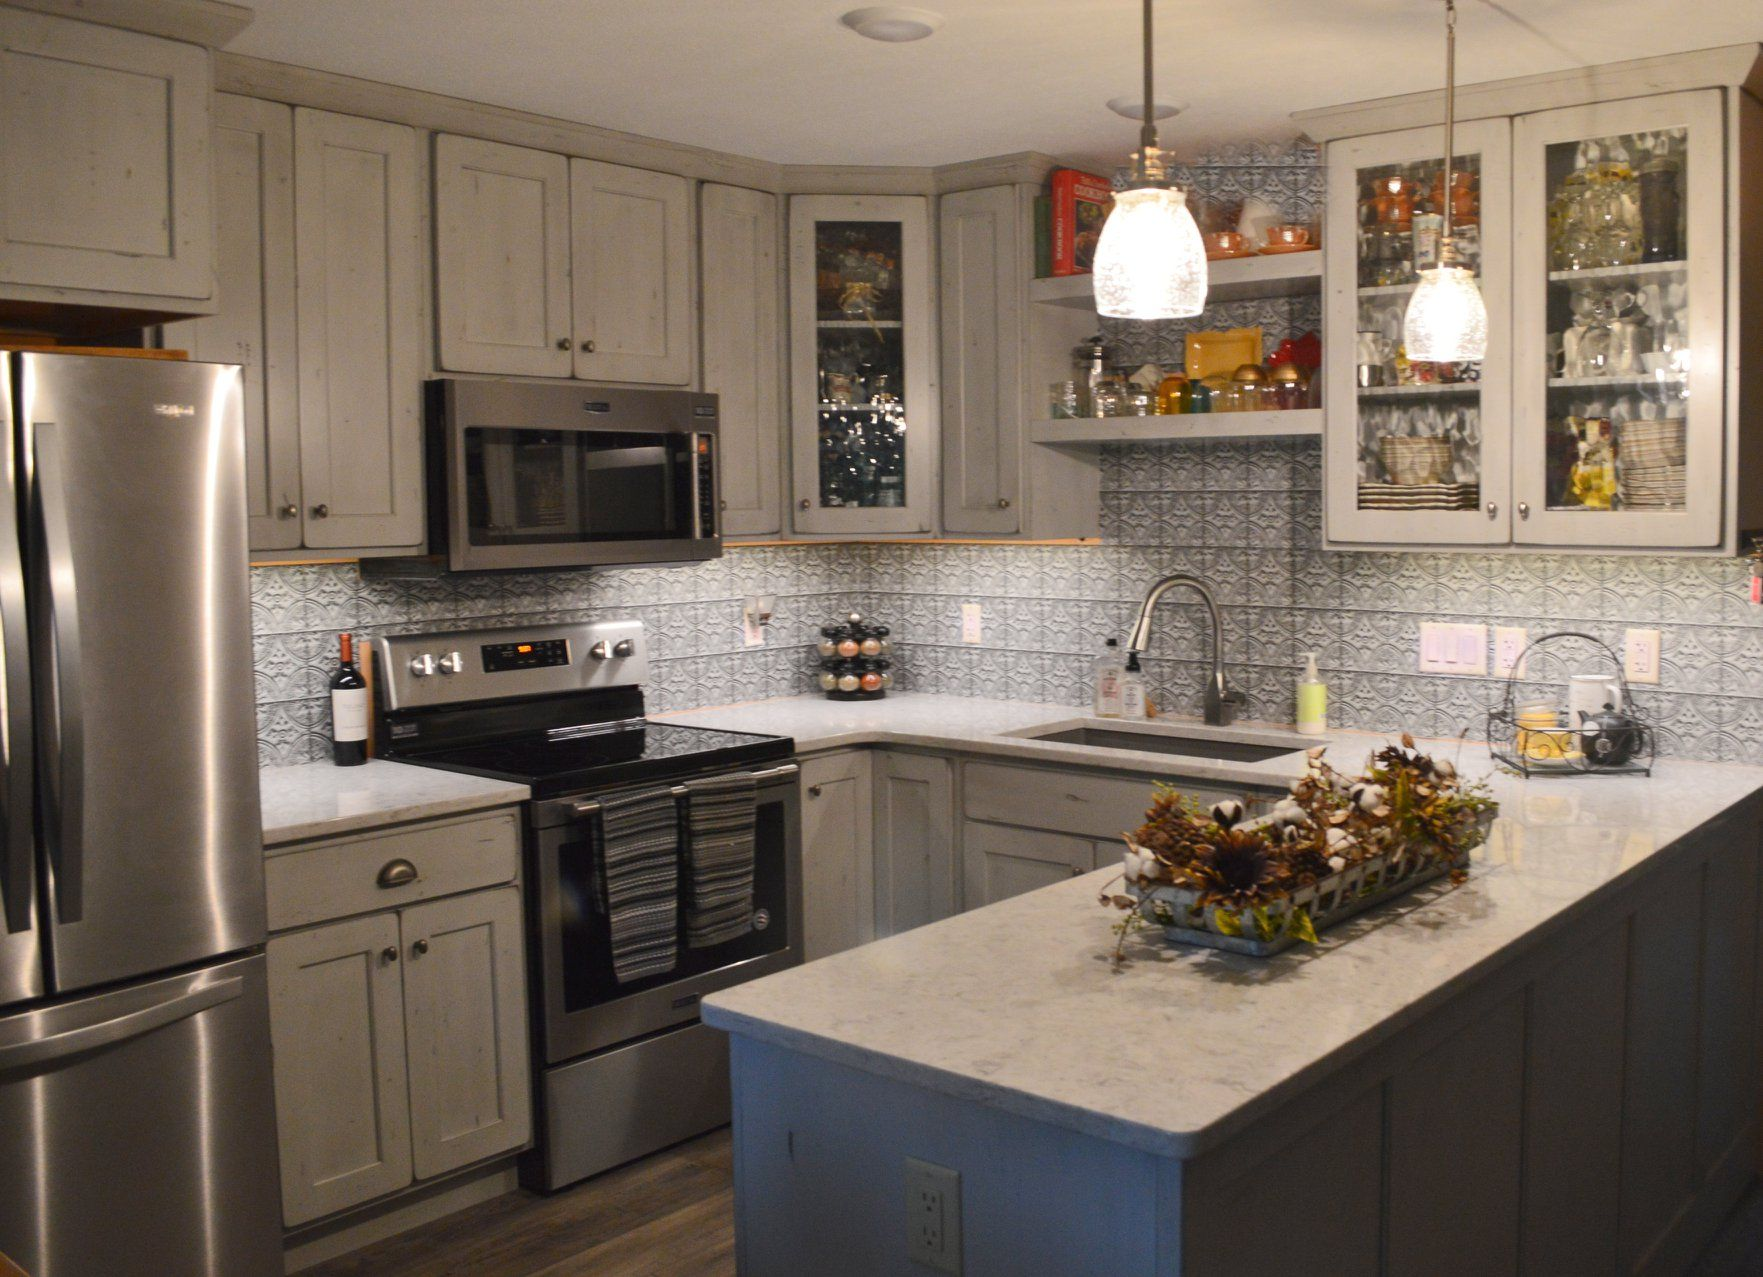 This Remodel In Progress Comes With One Happy Homeowner Beautiful Showplace Cabinetry Sterling Doorstyle With Gunsmo Cabinetry Design Kitchen Gallery Kitchen